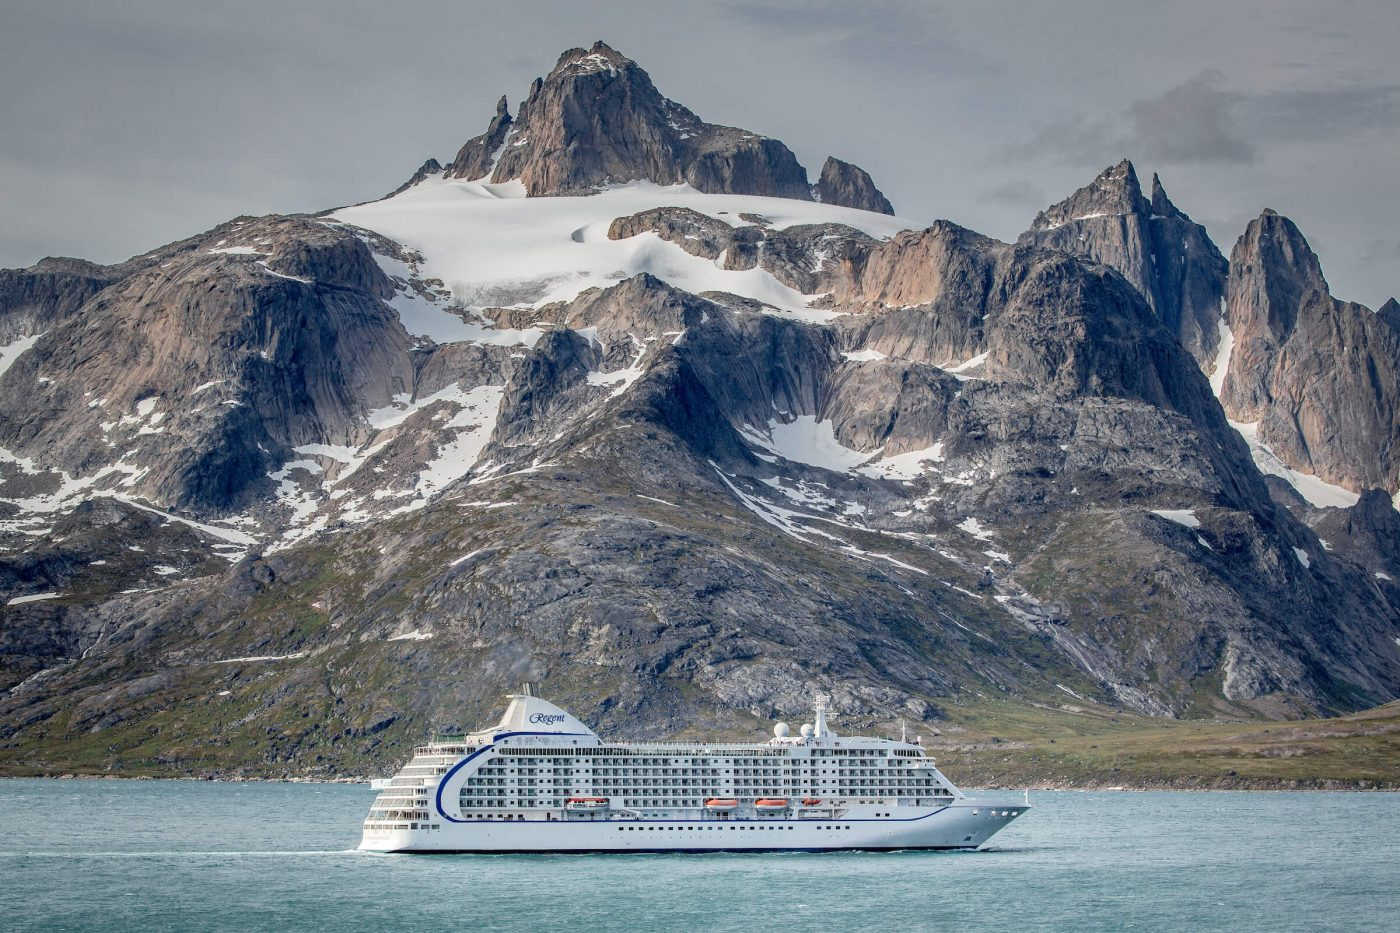 The cruise ship Sevens Seas Voyager passes underneath the mountain Qilertiki in South Greenland near Aappilattoq and Prince Christian Sound